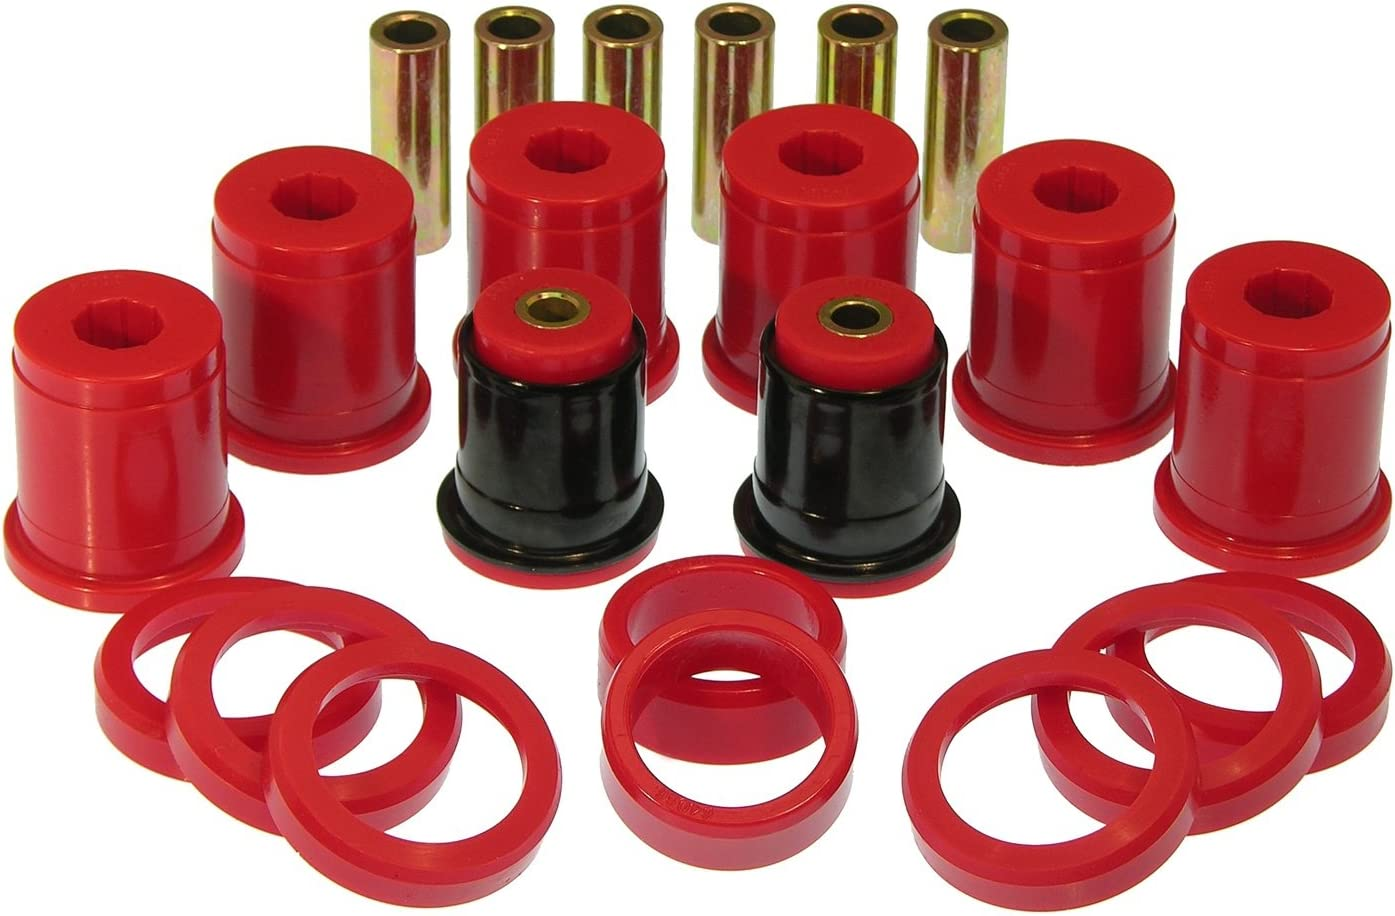 Prothane 7-312 Red Directly managed store Rear Bushing Safety and trust Arm Control Kit